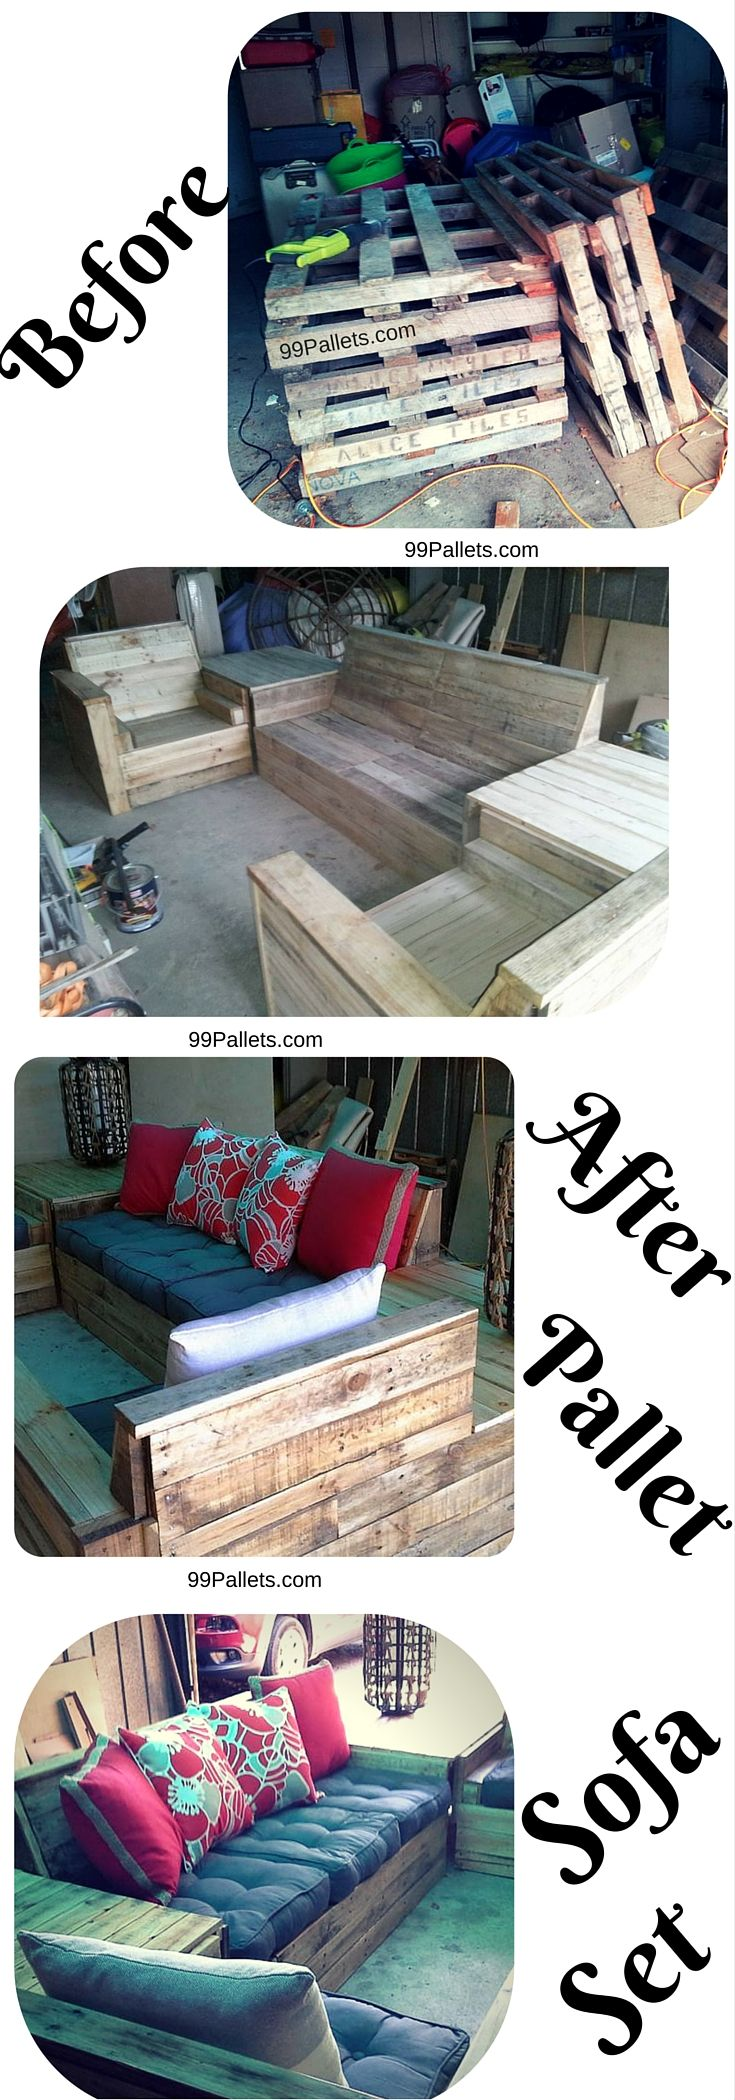 Diy sofa plans build your own couch build your own couch with - Best 25 Pallet Sofa Ideas On Pinterest Palette Furniture Wood Pallet Couch And Pallet Couch Cushions